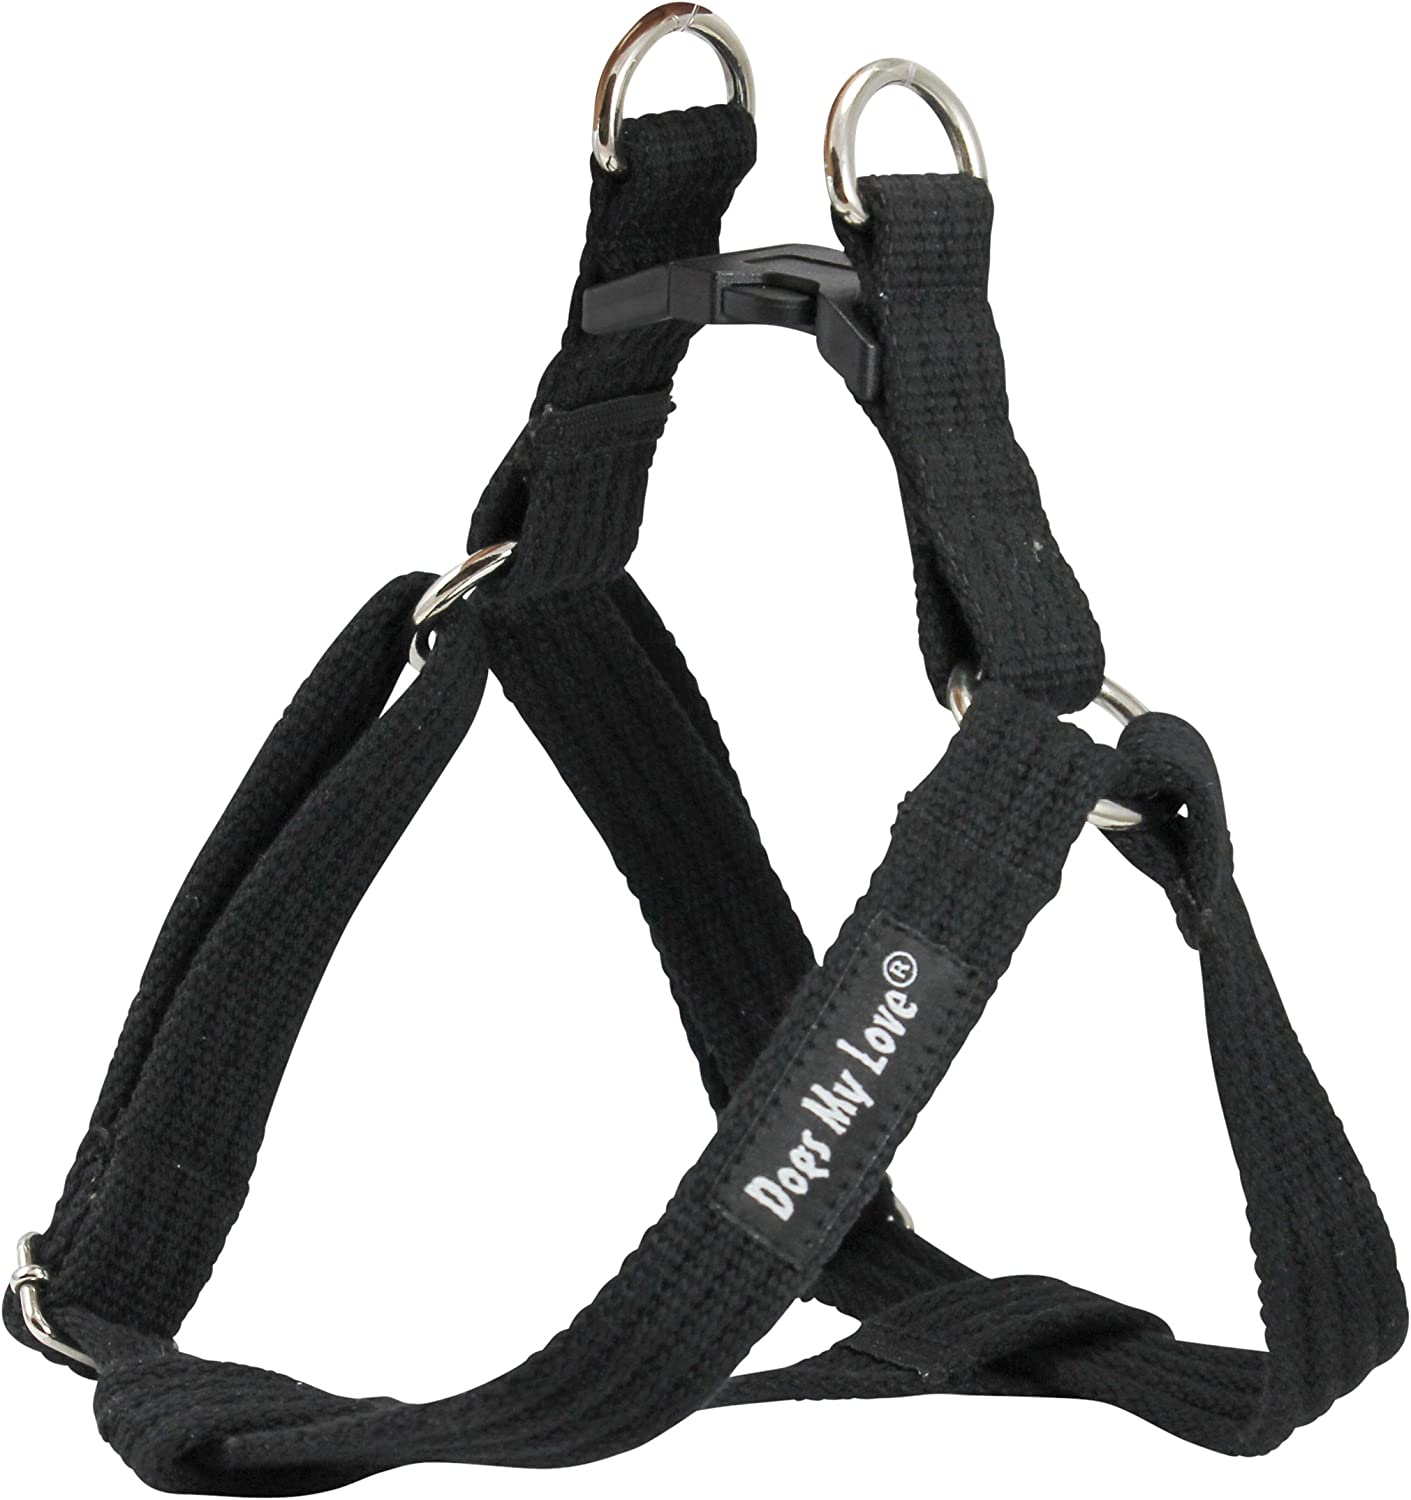 Cotton Web Adjustable Dog Stepin Harness 4 Sizes Black (Small  8 13.5  Chest; 5 8  Wide)